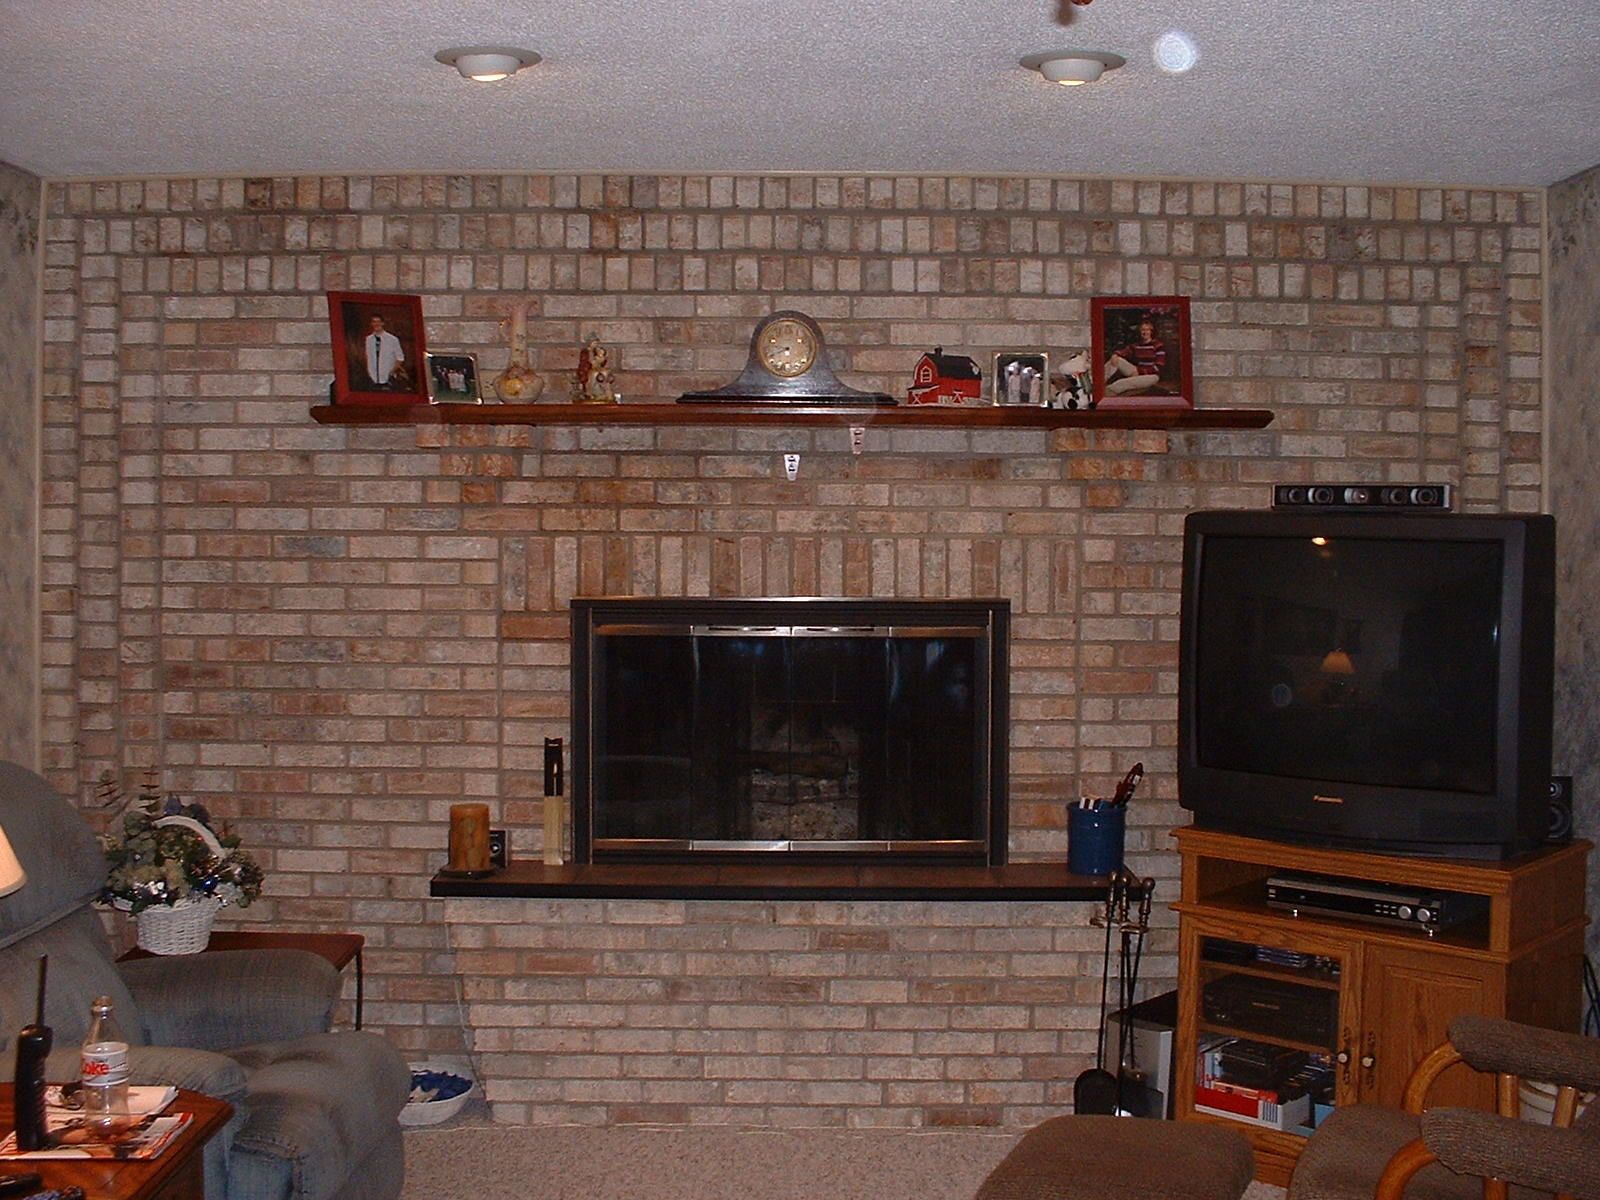 Brick Laminate Picture: Brick Fireplace Designs